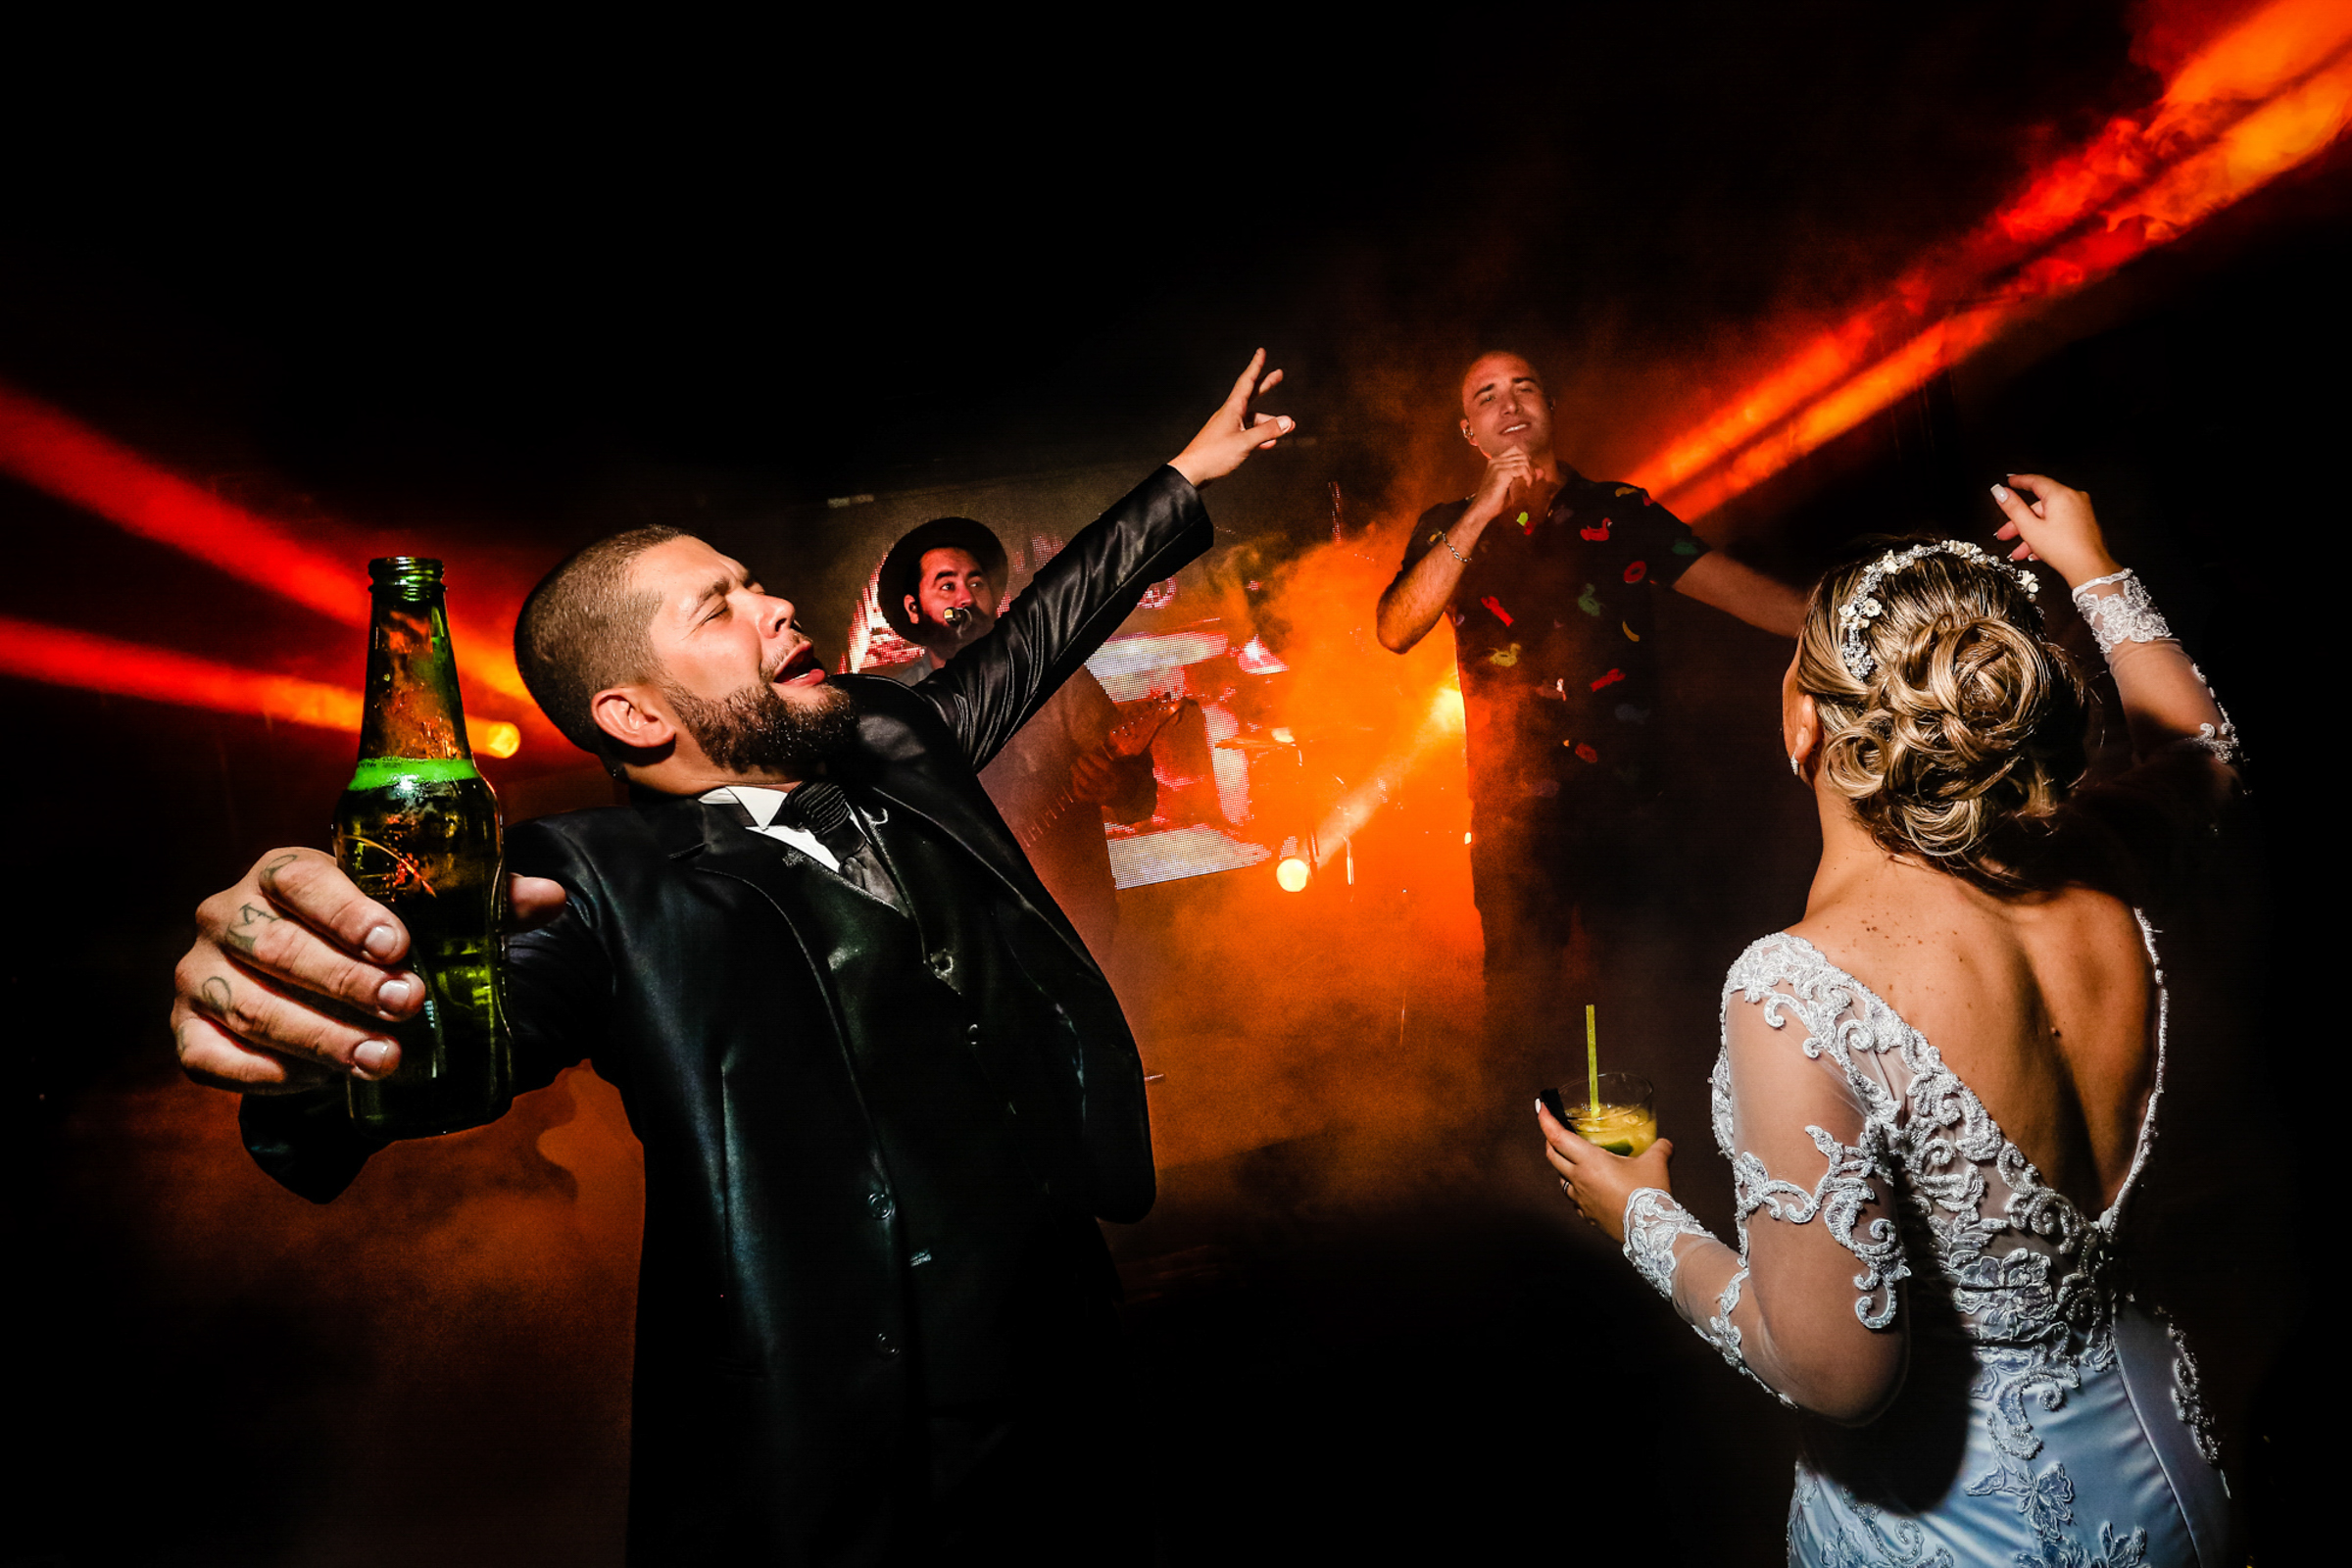 Party time under colorful lights - photo by Área da Fotografia